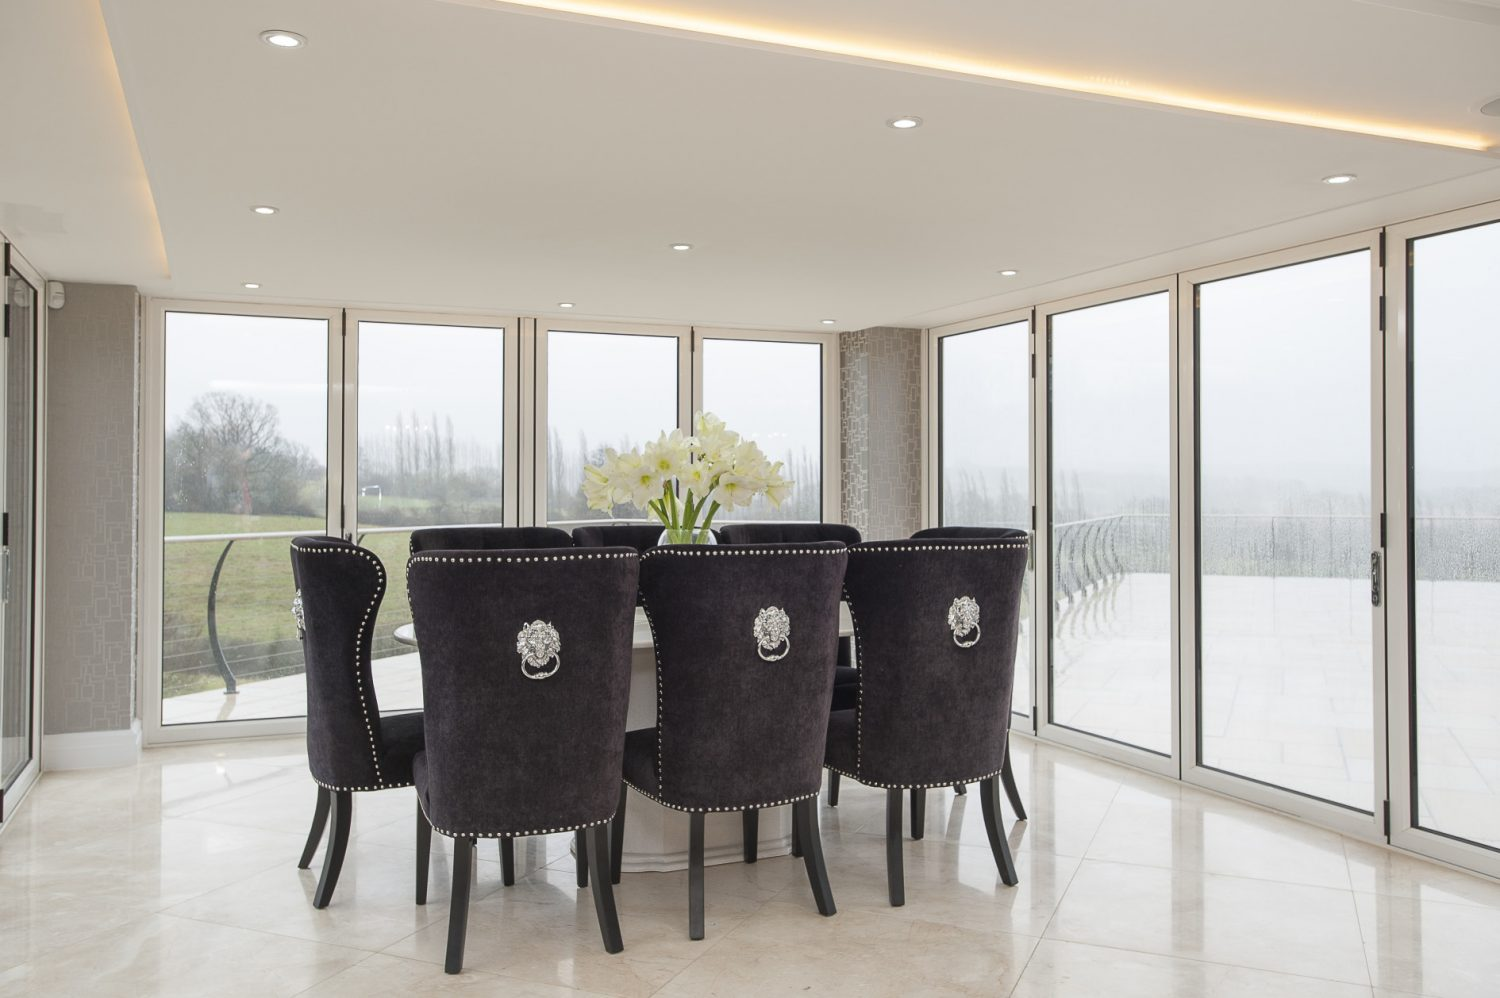 The couple have created a spacious kitchen, dining and living area which enjoys beautiful views into the valley below